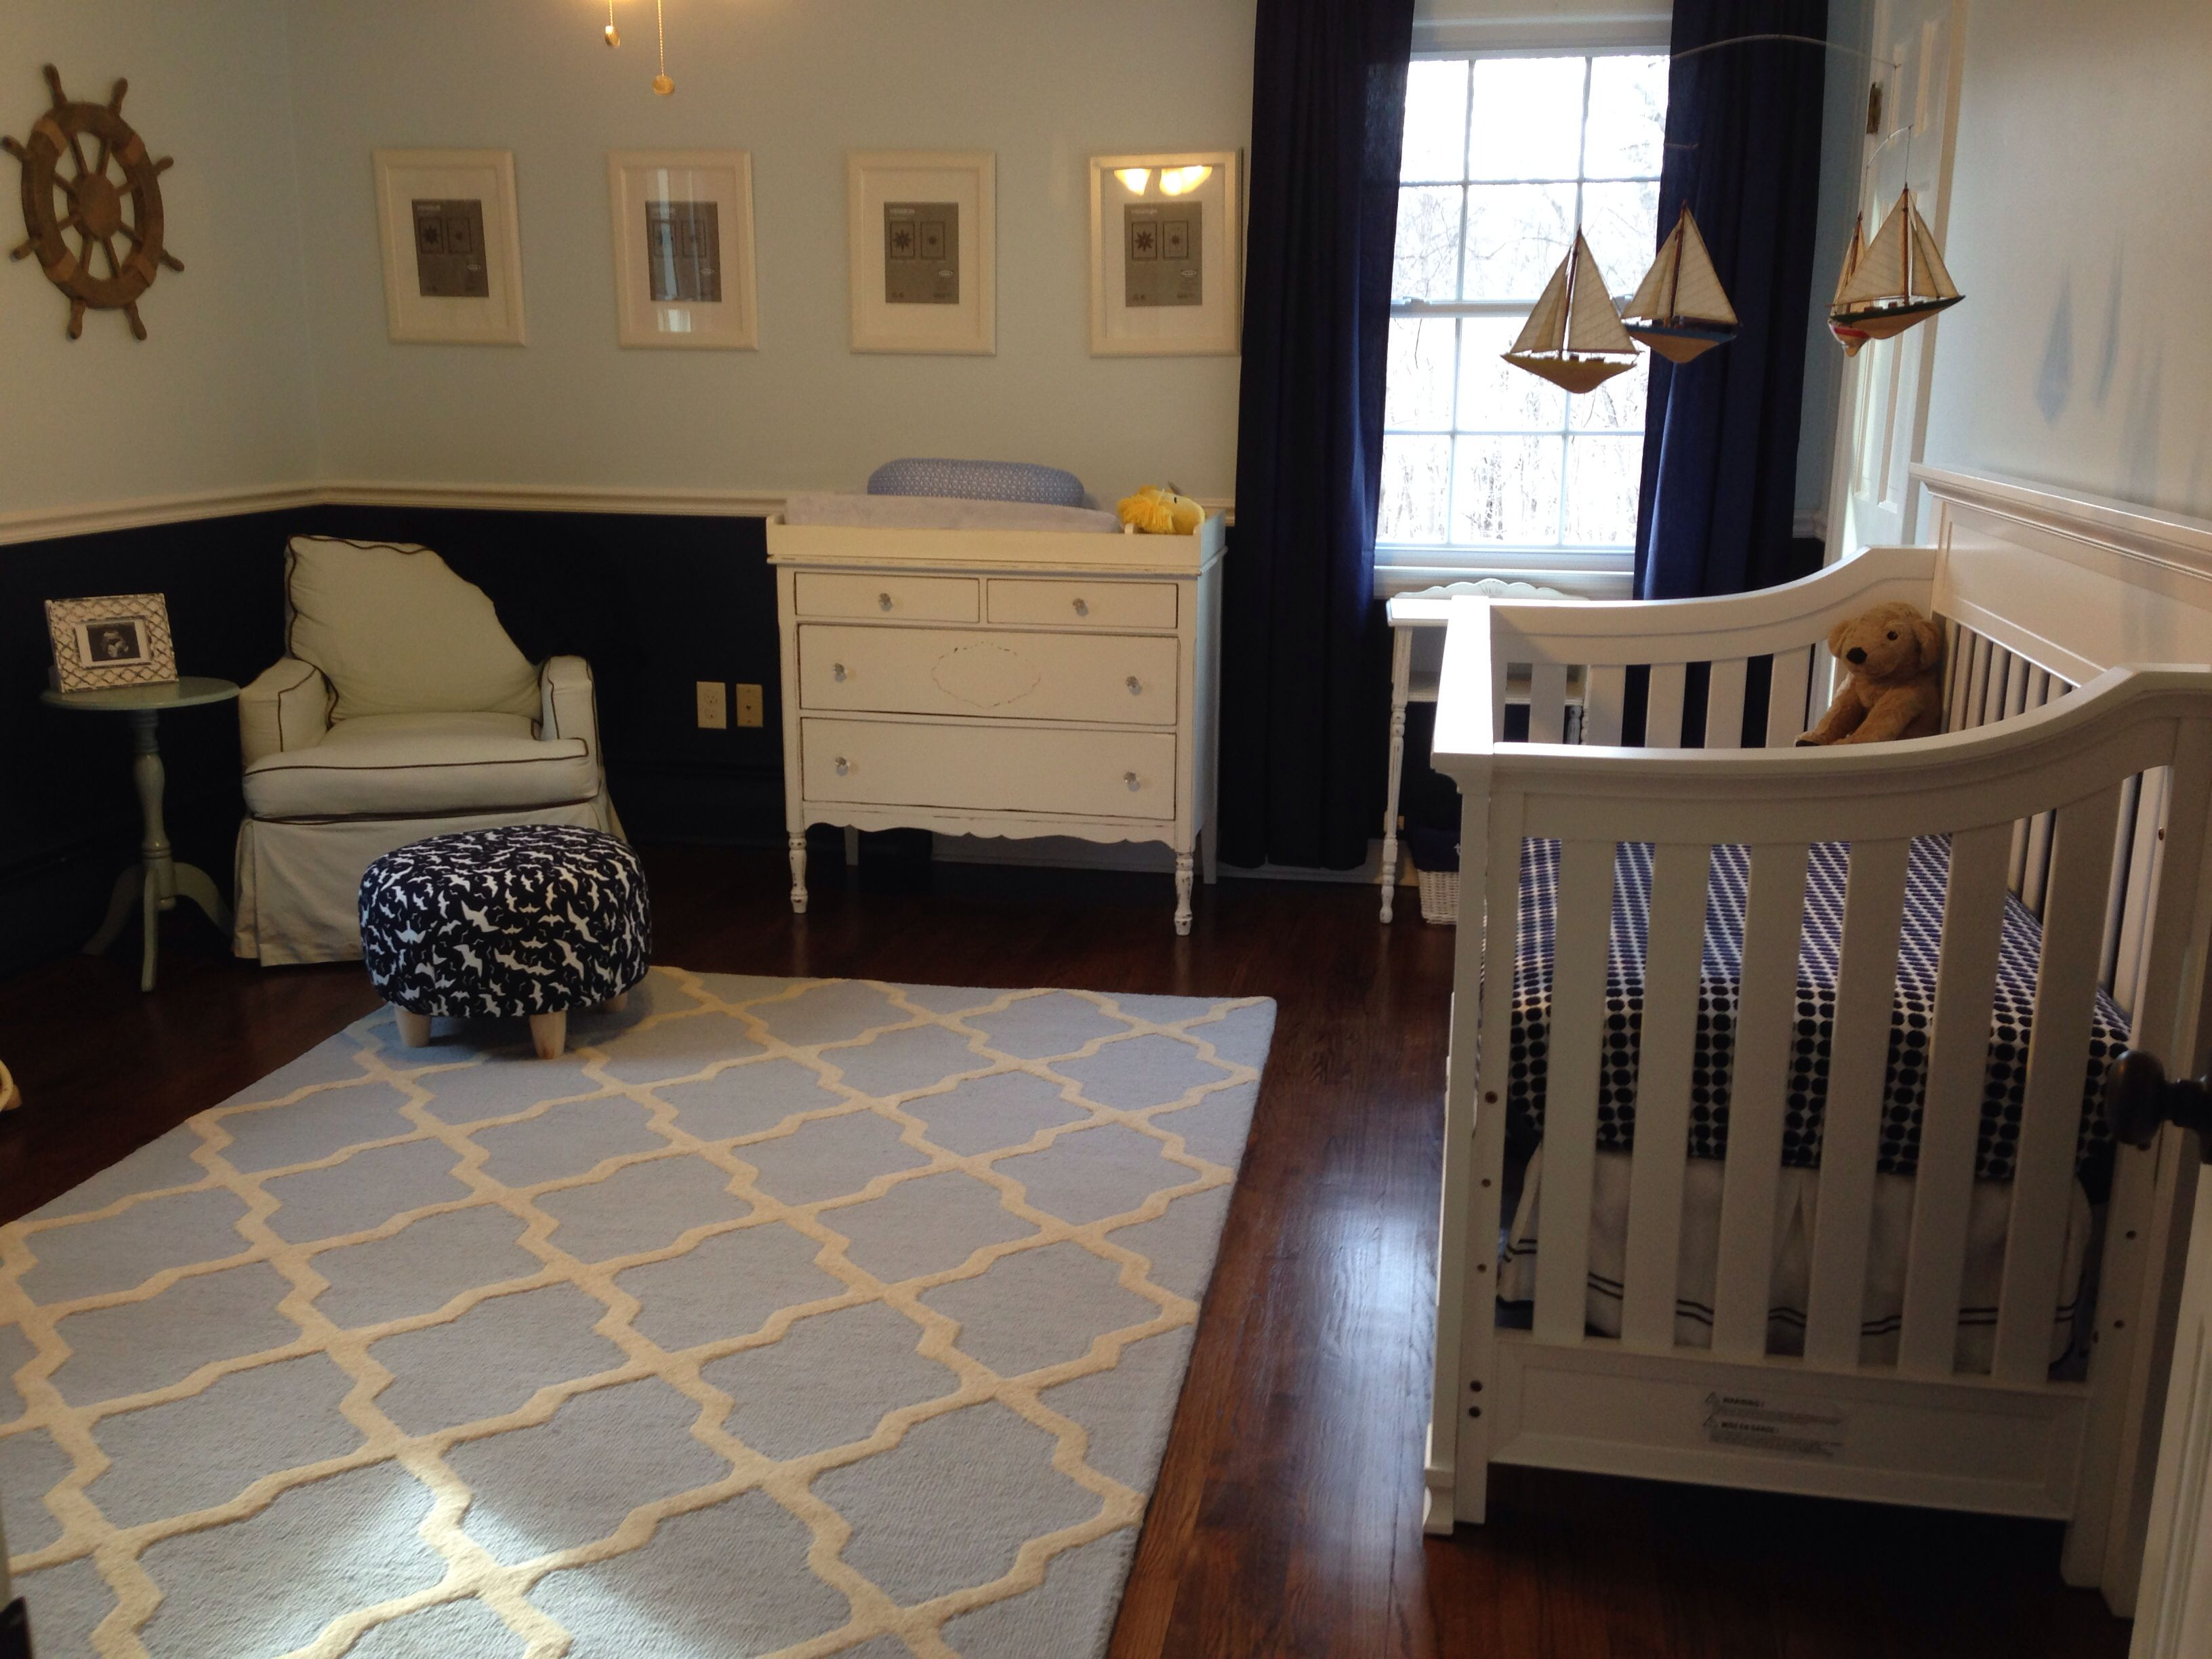 Hudson S Nautical Nursery Navy Blue And Pale Blue Walls Light Blue Trellis Rug From Overstock For Those Interested The Rugs By Safavieh It S The Cambridge